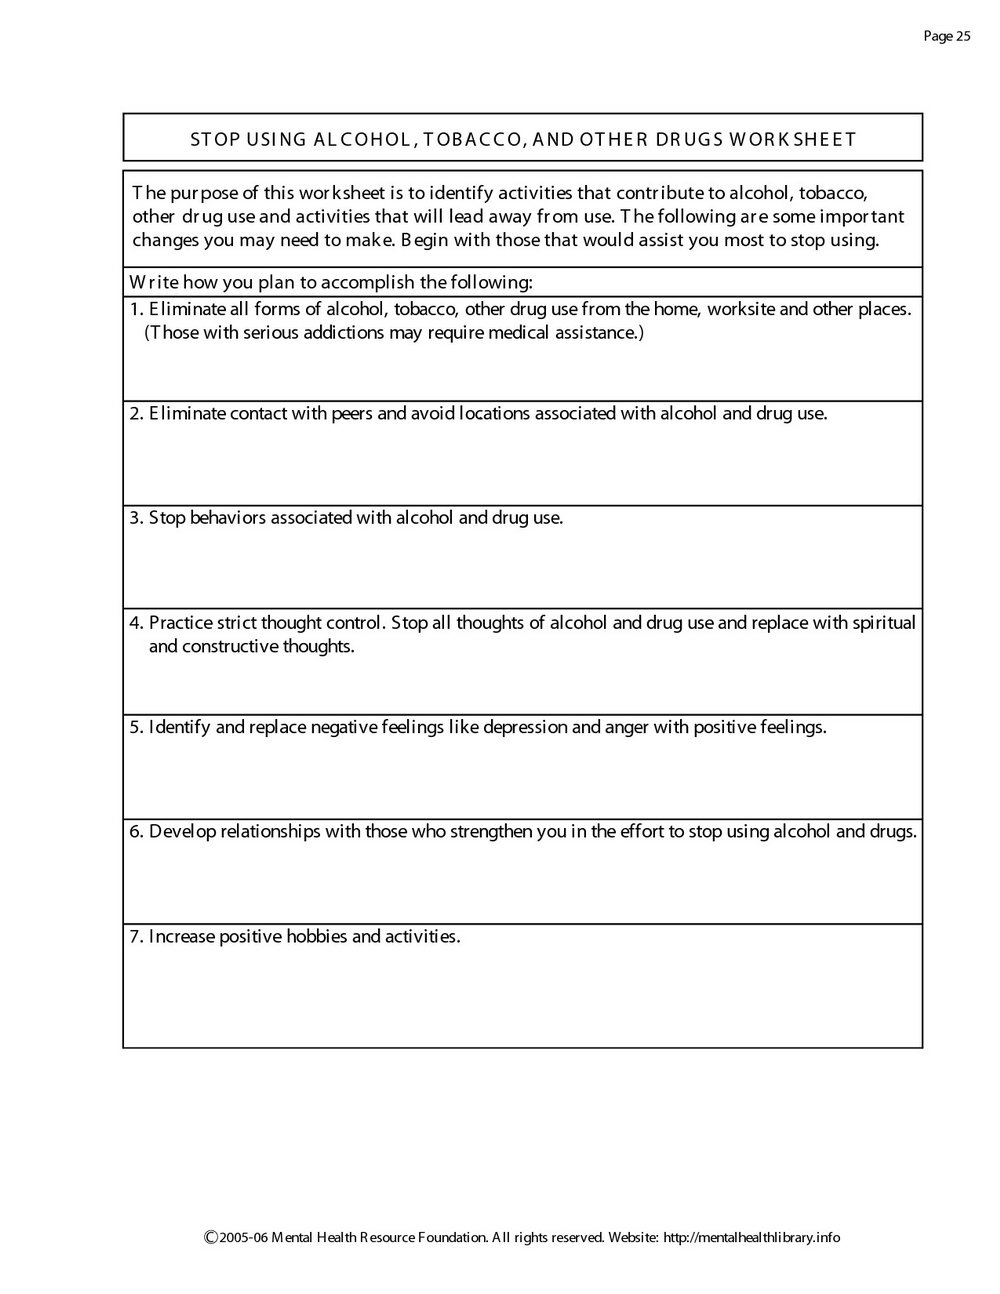 Prescription Drug Abuse Worksheets